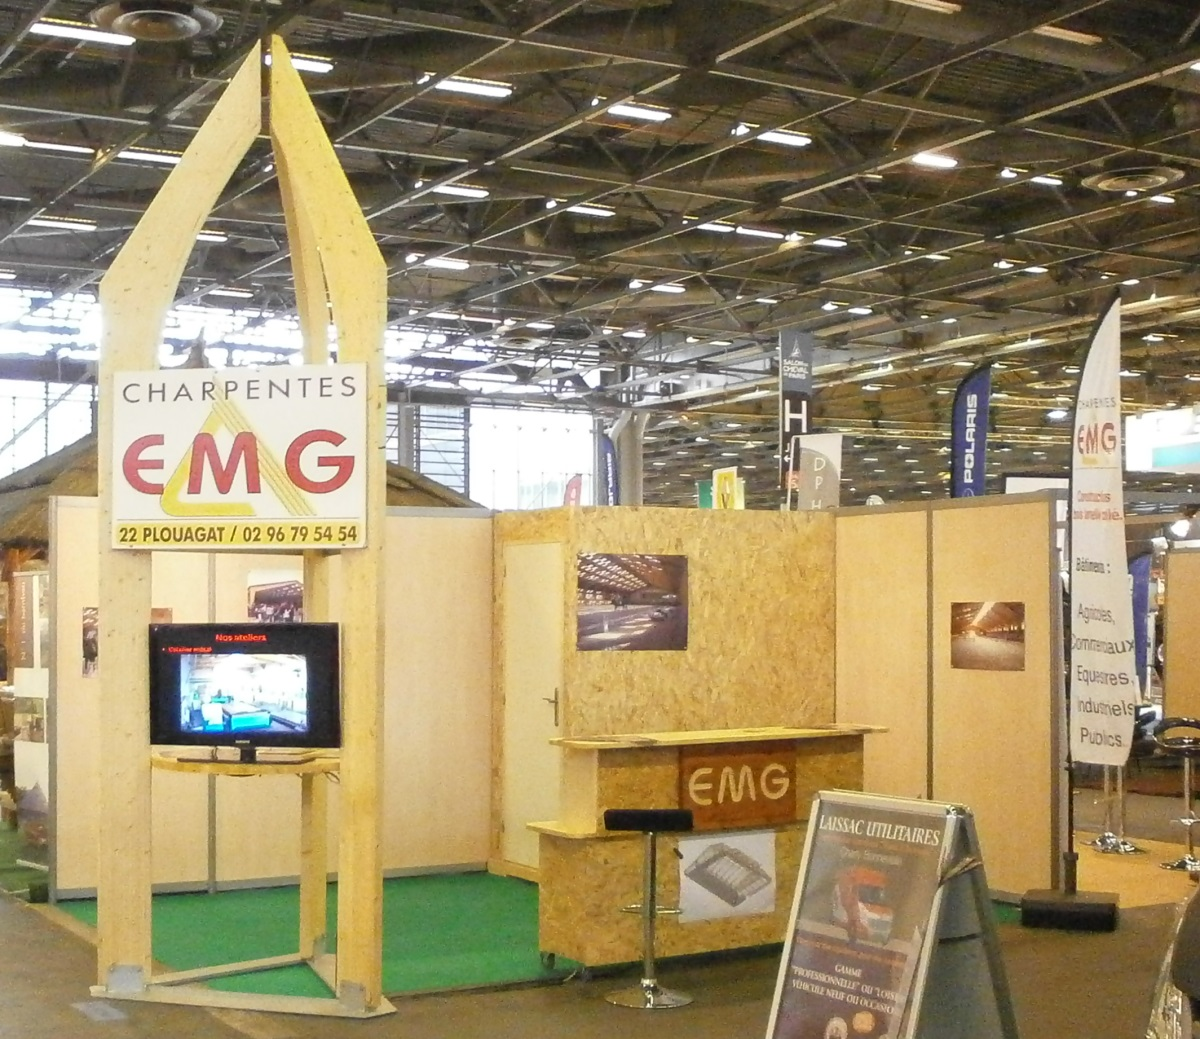 Emg au salon du cheval de paris du 30 novembre au 8 for Salon du bois paris